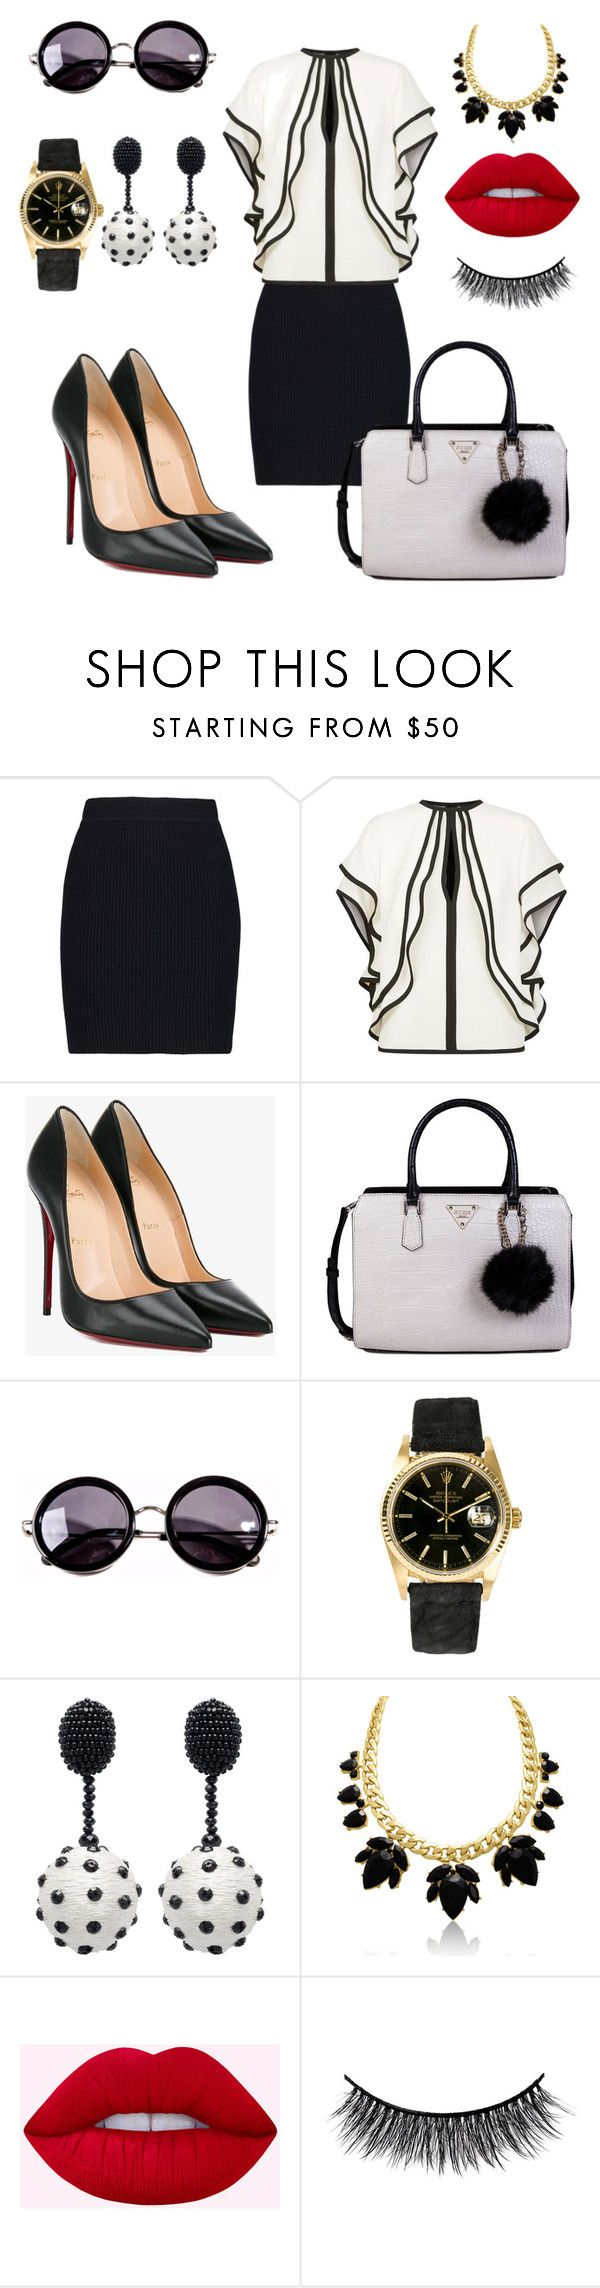 """Strong lady"" by putxzzahra ❤ liked on Polyvore featuring Helmut Lang, Elie Saab, Christian Louboutin, GUESS, Linda Farrow, Rolex, Oscar de la Renta and Battington"